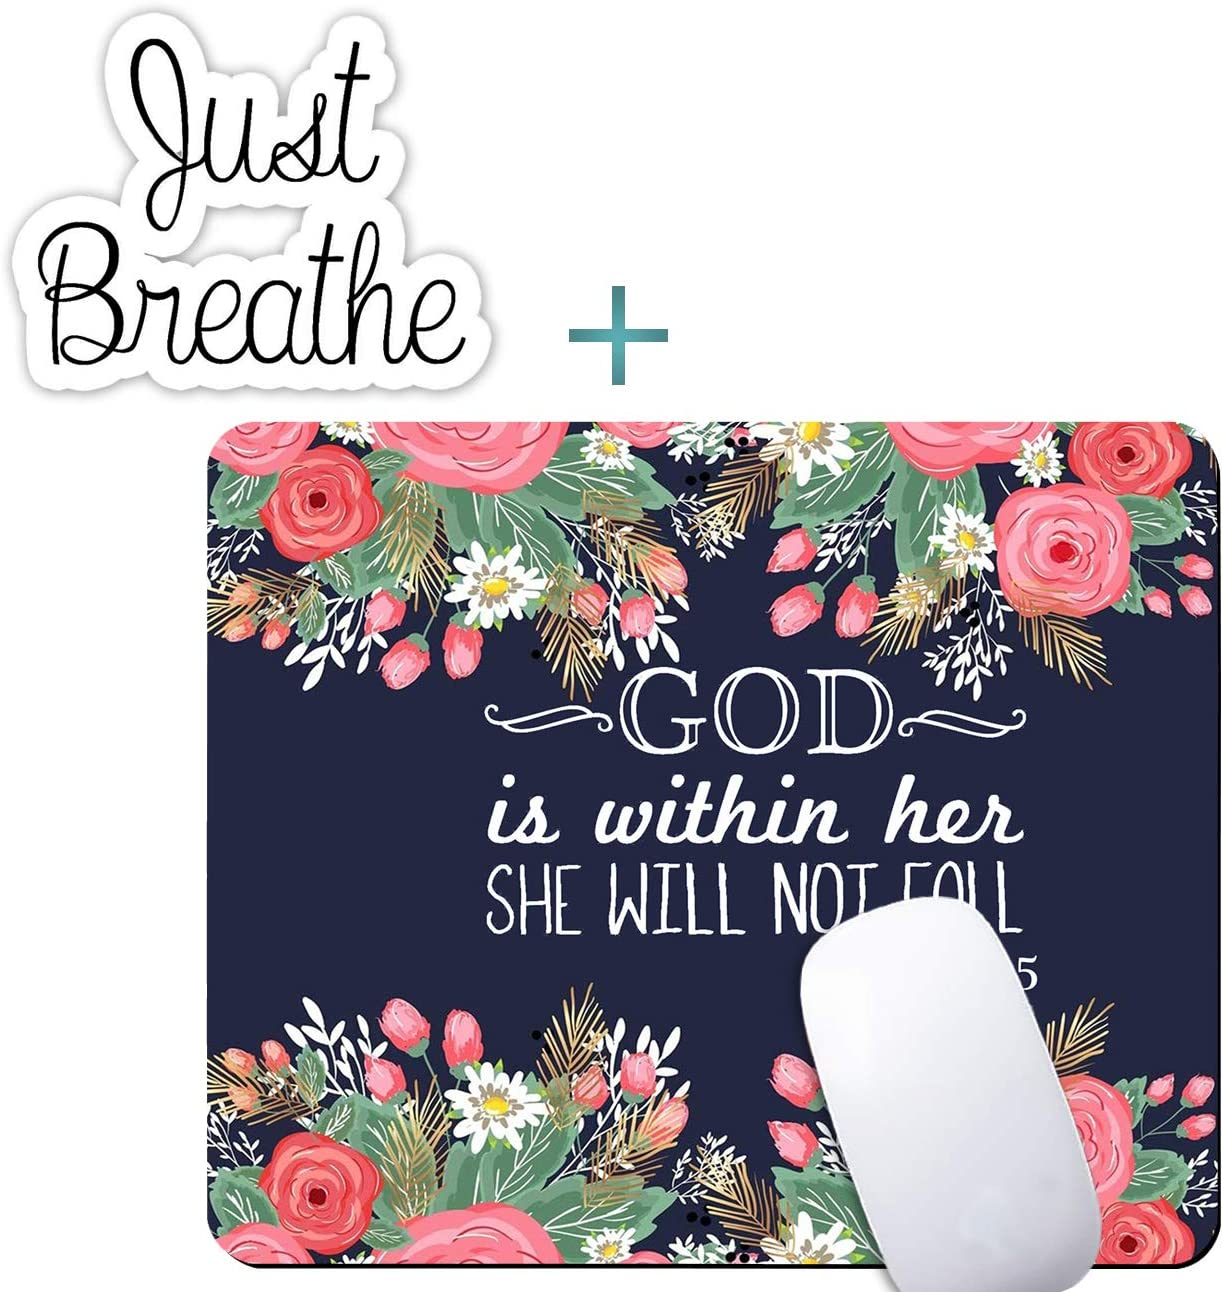 Floral Mouse Pad, Bible Verse God is with Her Mousepad with Cute Laptop Stickers, Non-Slip Rubber Gaming Mouse Pad Office Home Desk Decor Computers Laptop Accessories Mouse Mat Pad